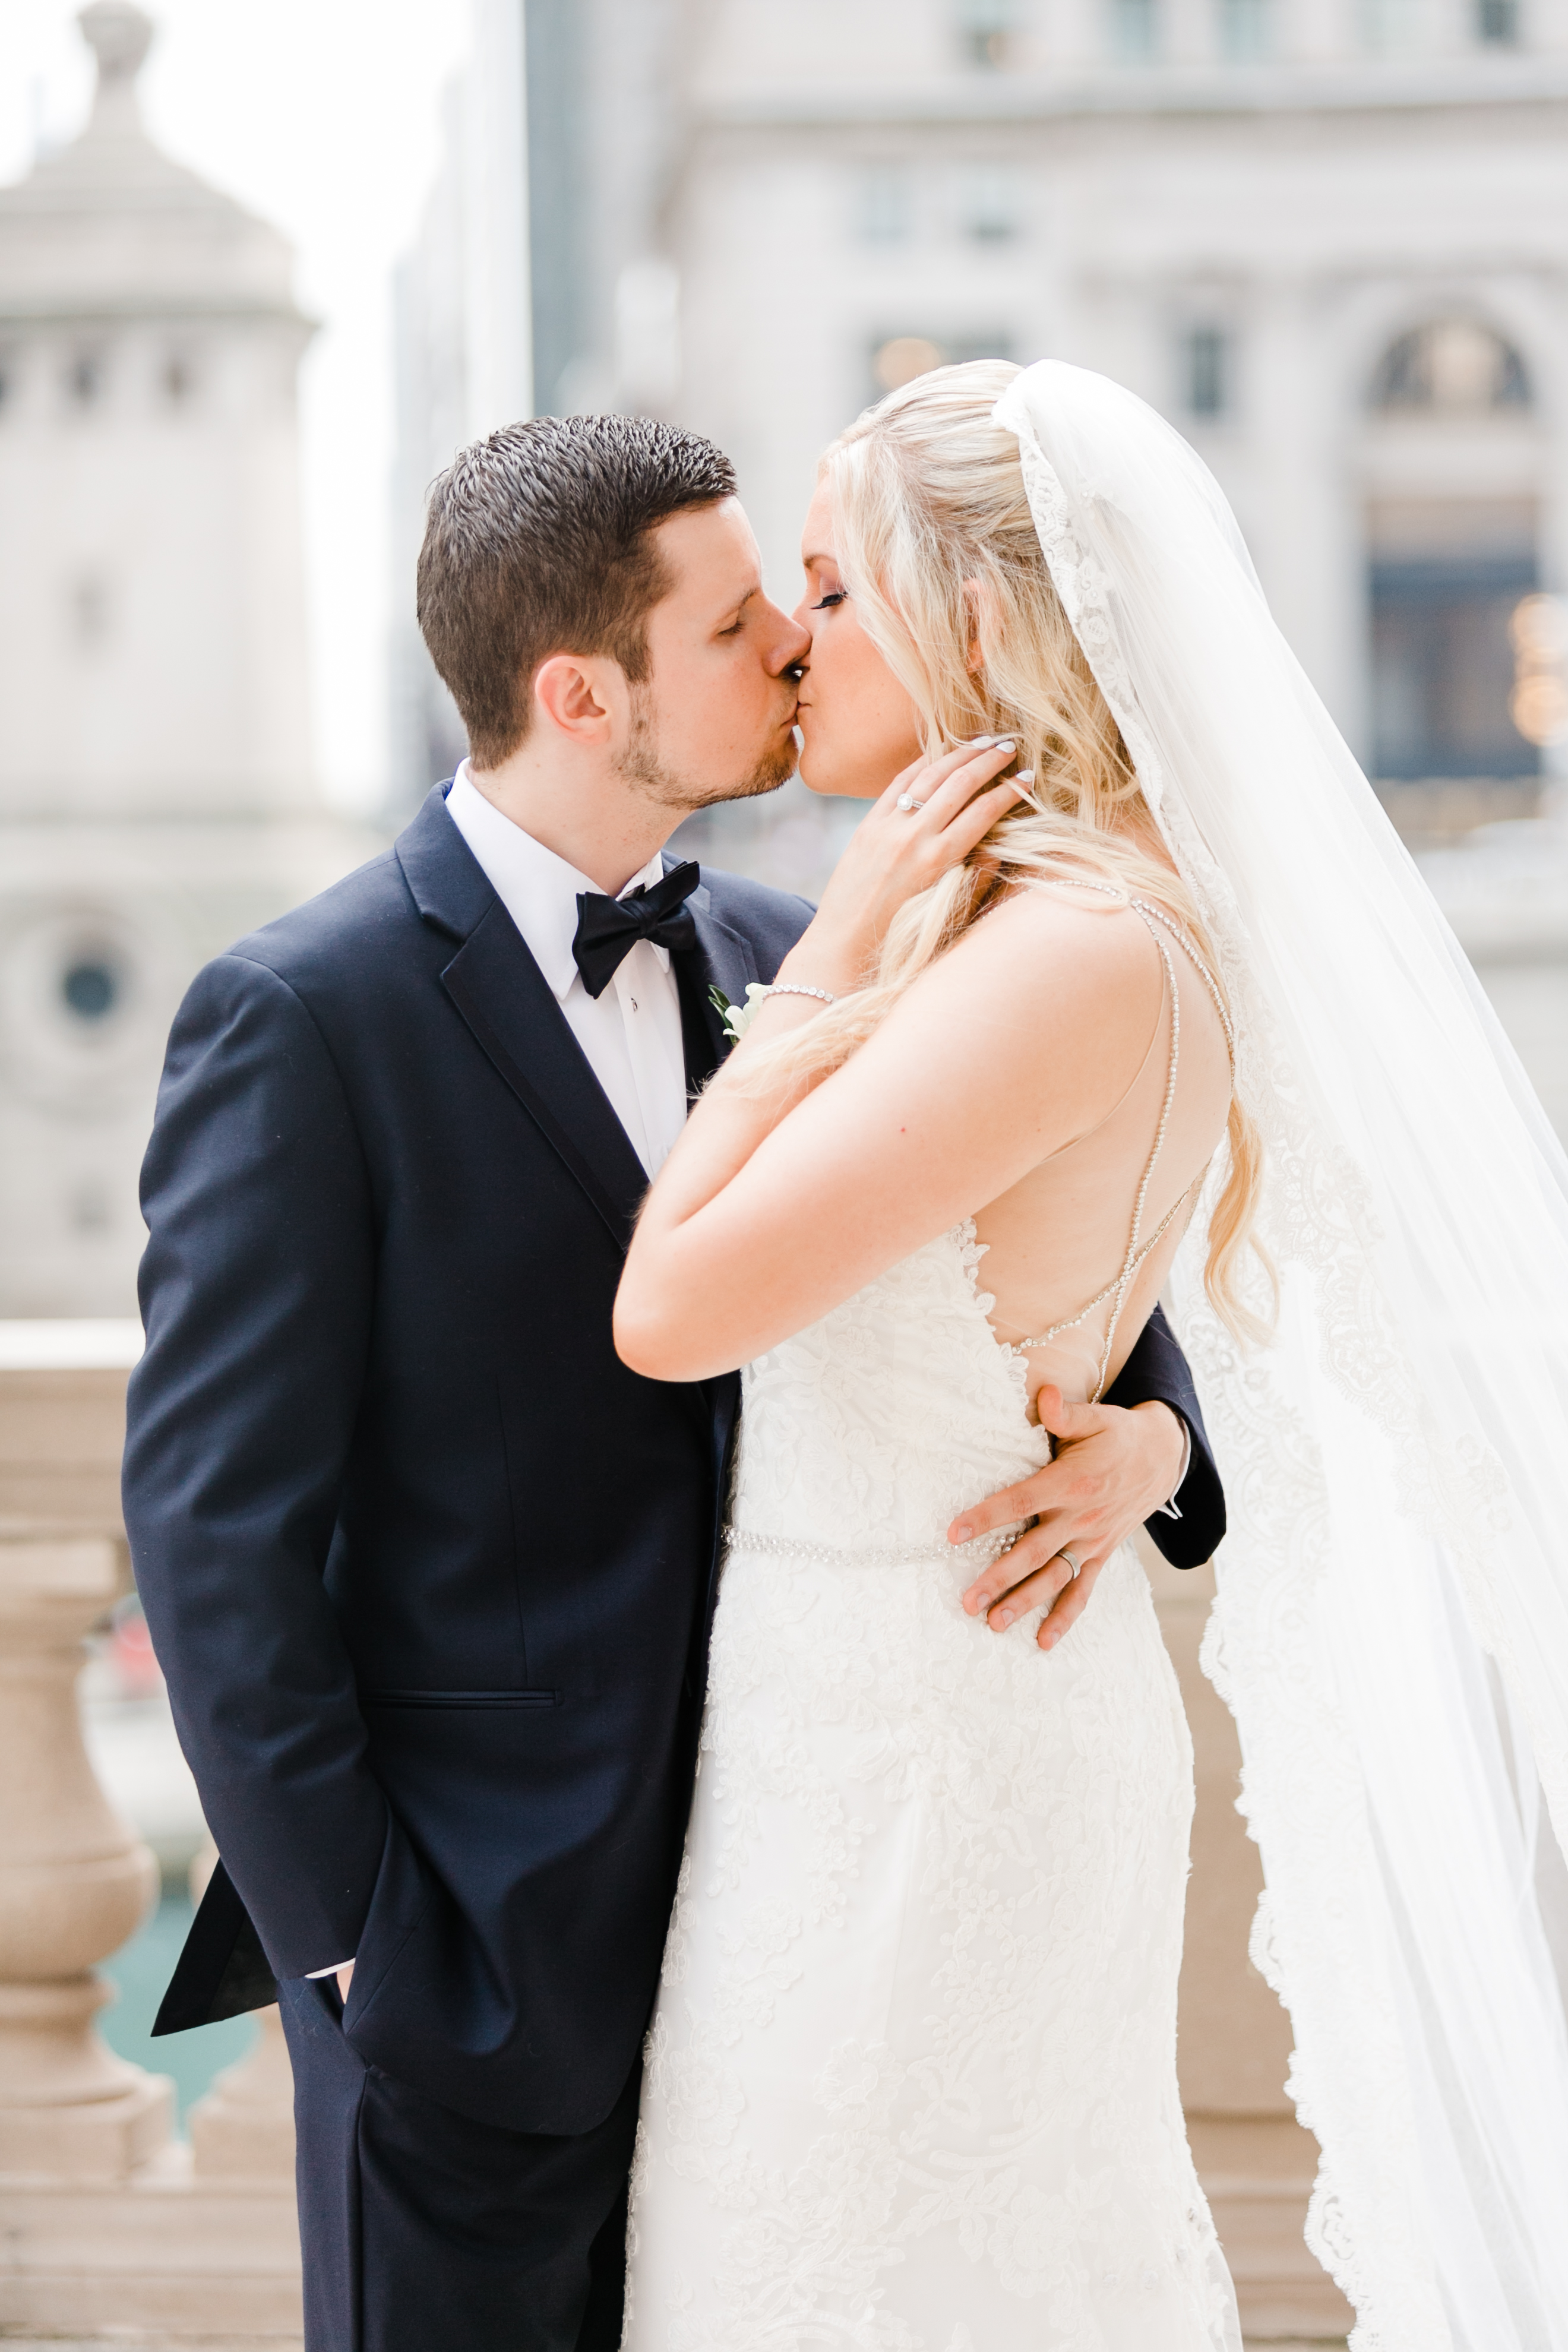 Chicago Wedding Photographer | Janet D Photography-28